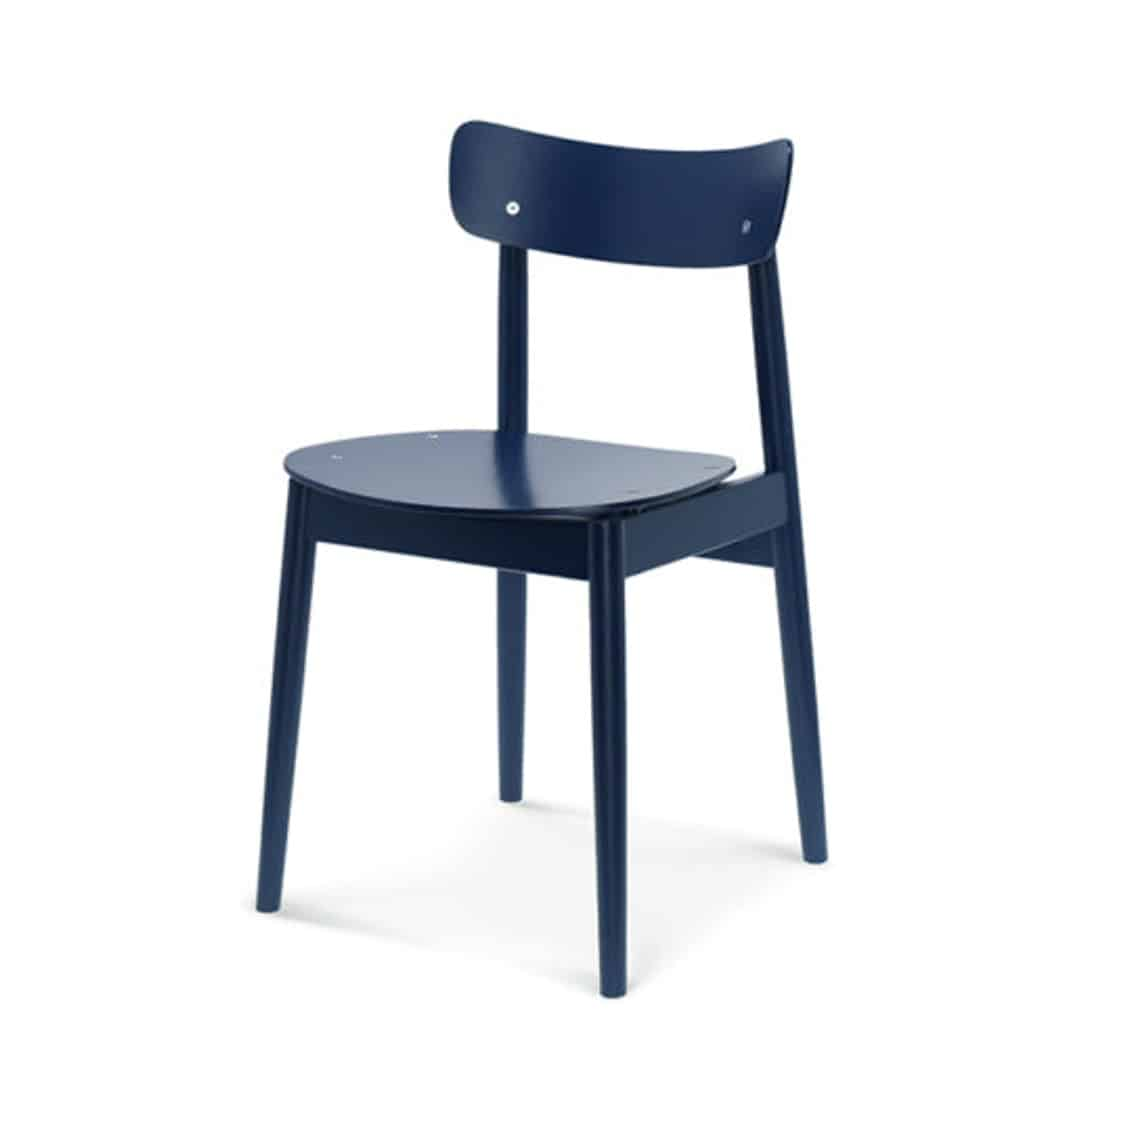 Chance curved back wood restaurant chair DeFrae contract furniture